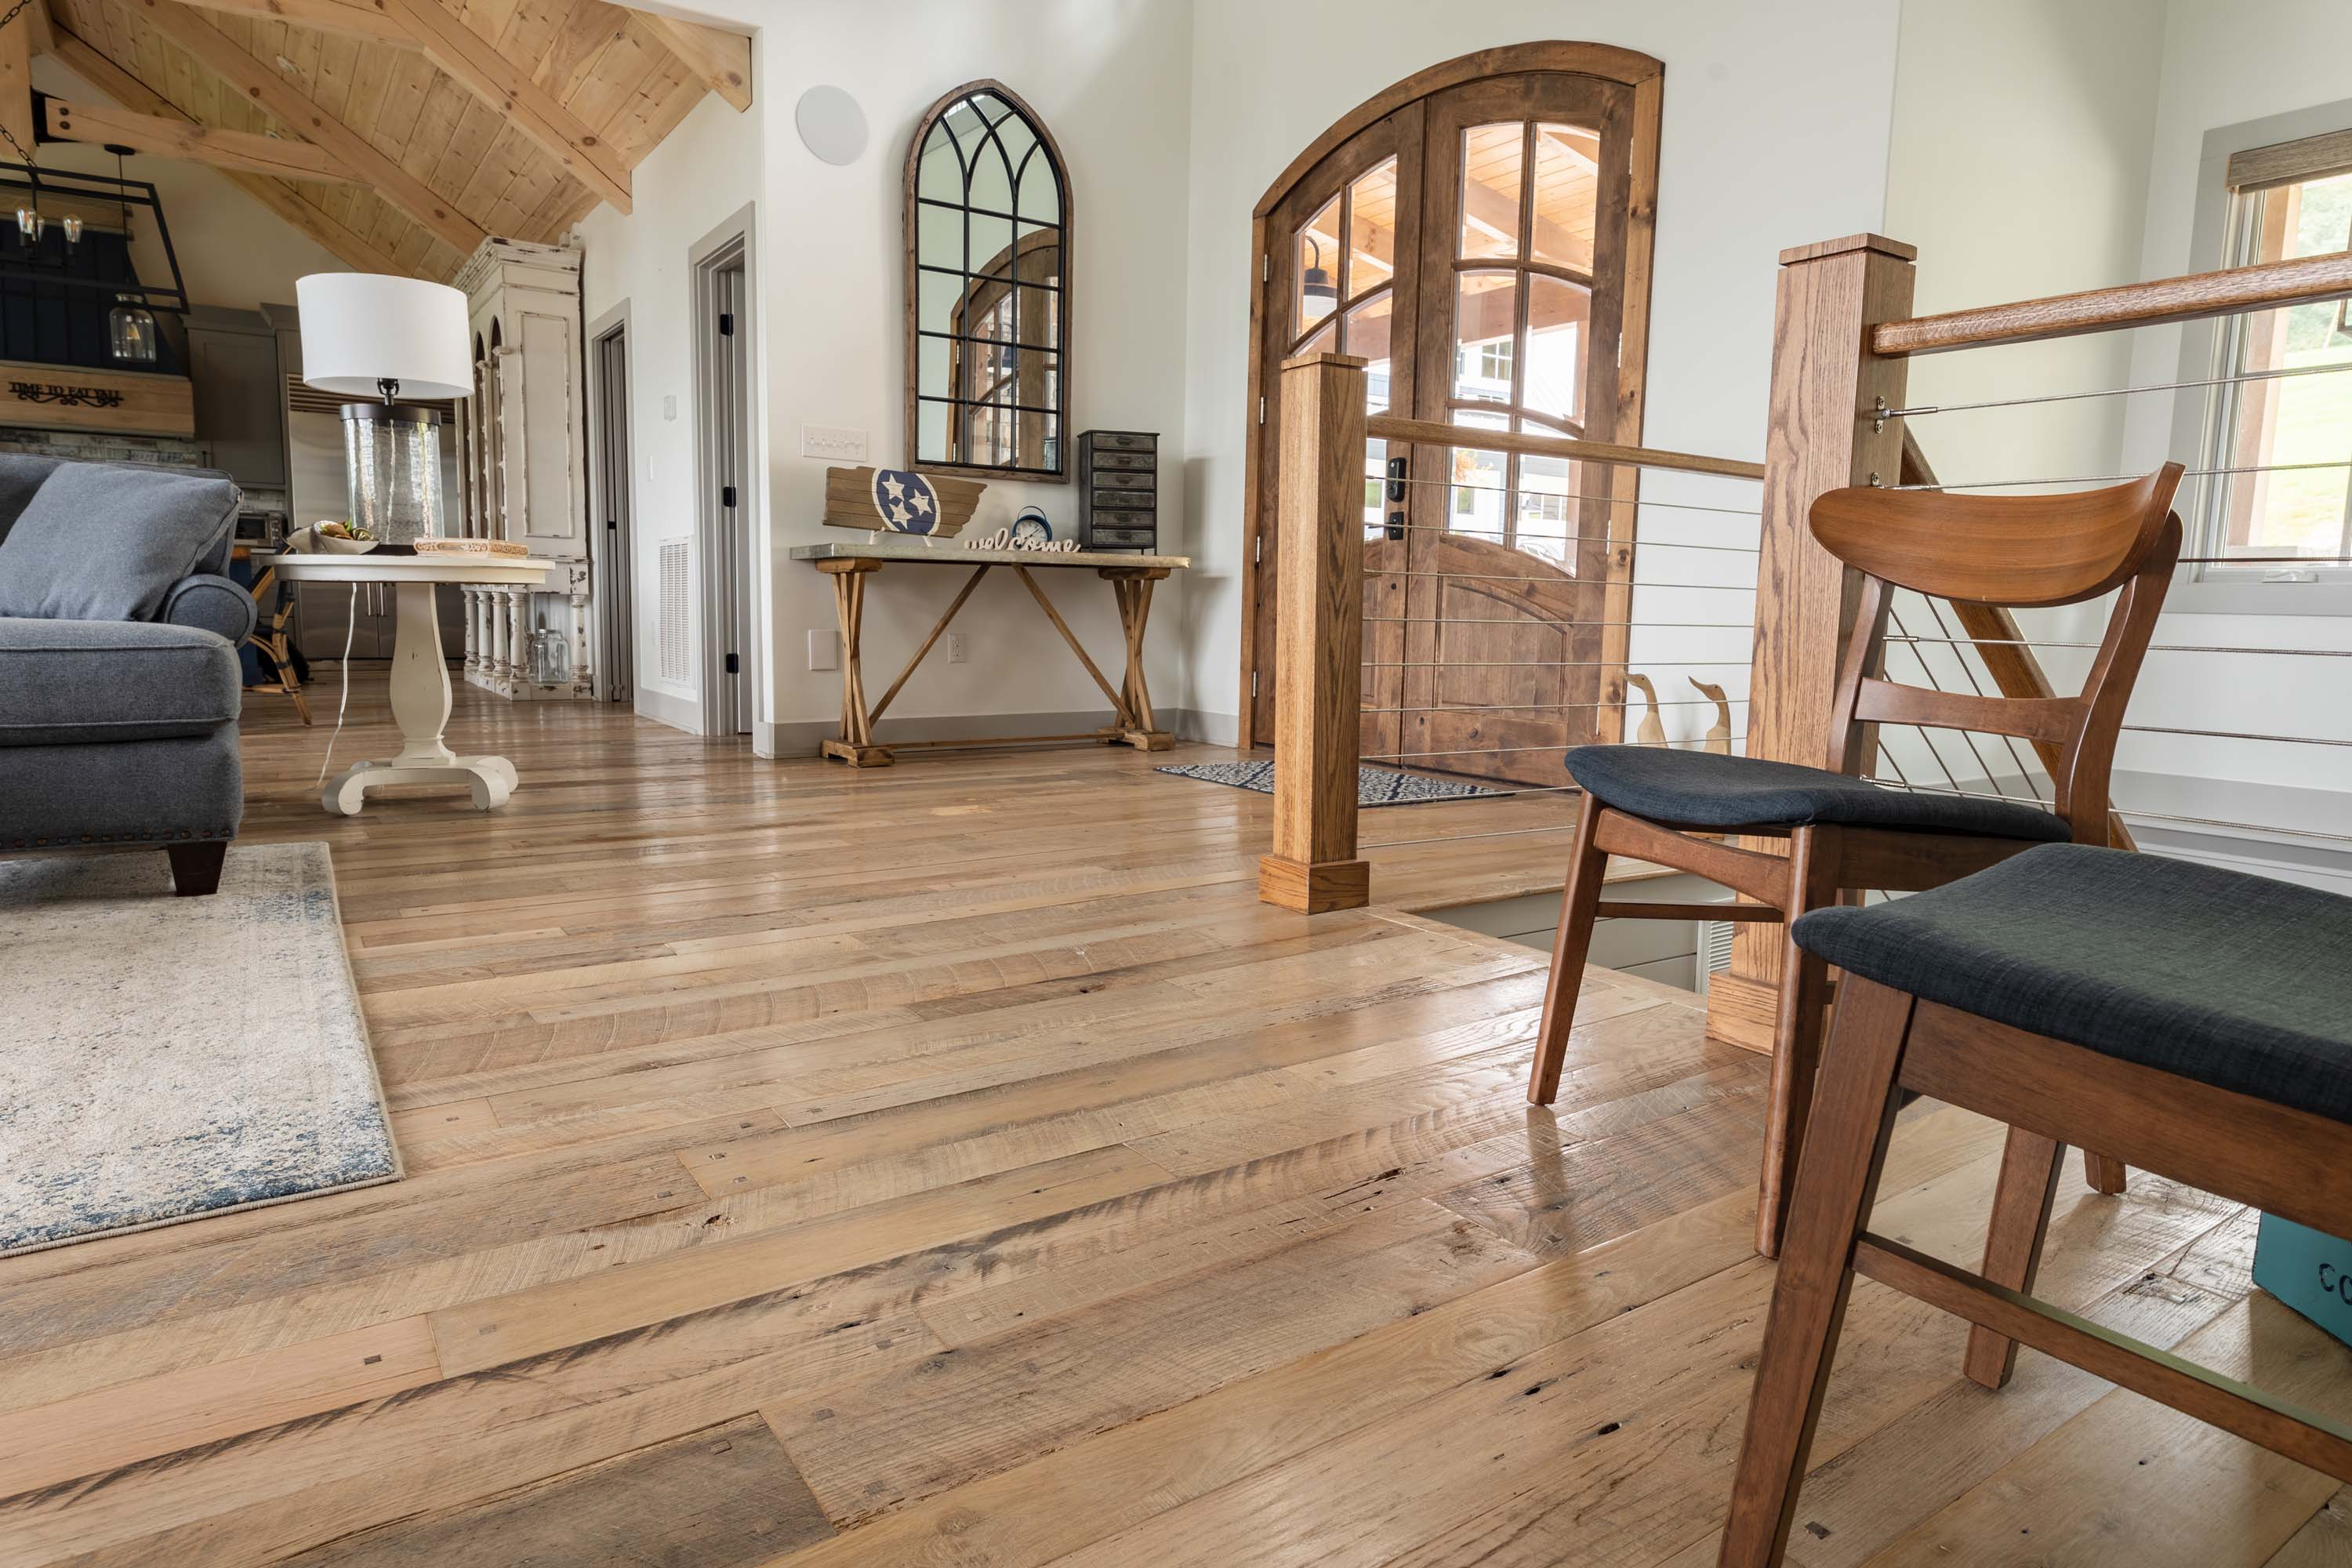 A living room area in a house  with Nantucket Reclaimed Wood Flooring by Tennessee Wood Flooring. These floors are real hardwood floors made locally.